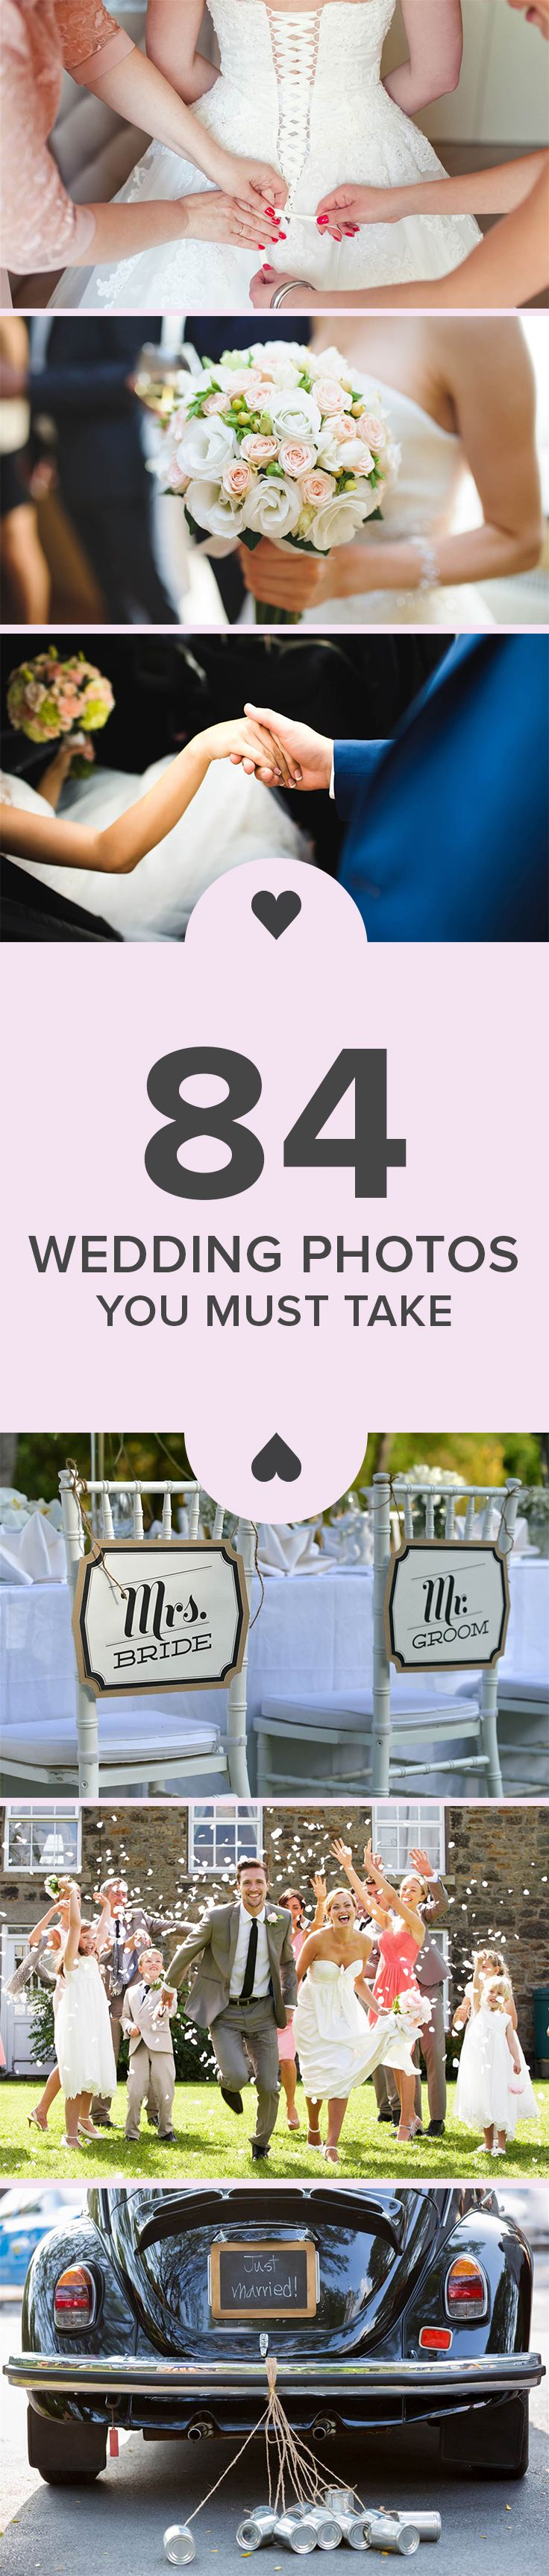 If you have wedding bells in your future, this list will help make sure you take full advantage of every photo opportunity and have lots of pictures to remember your wedding.